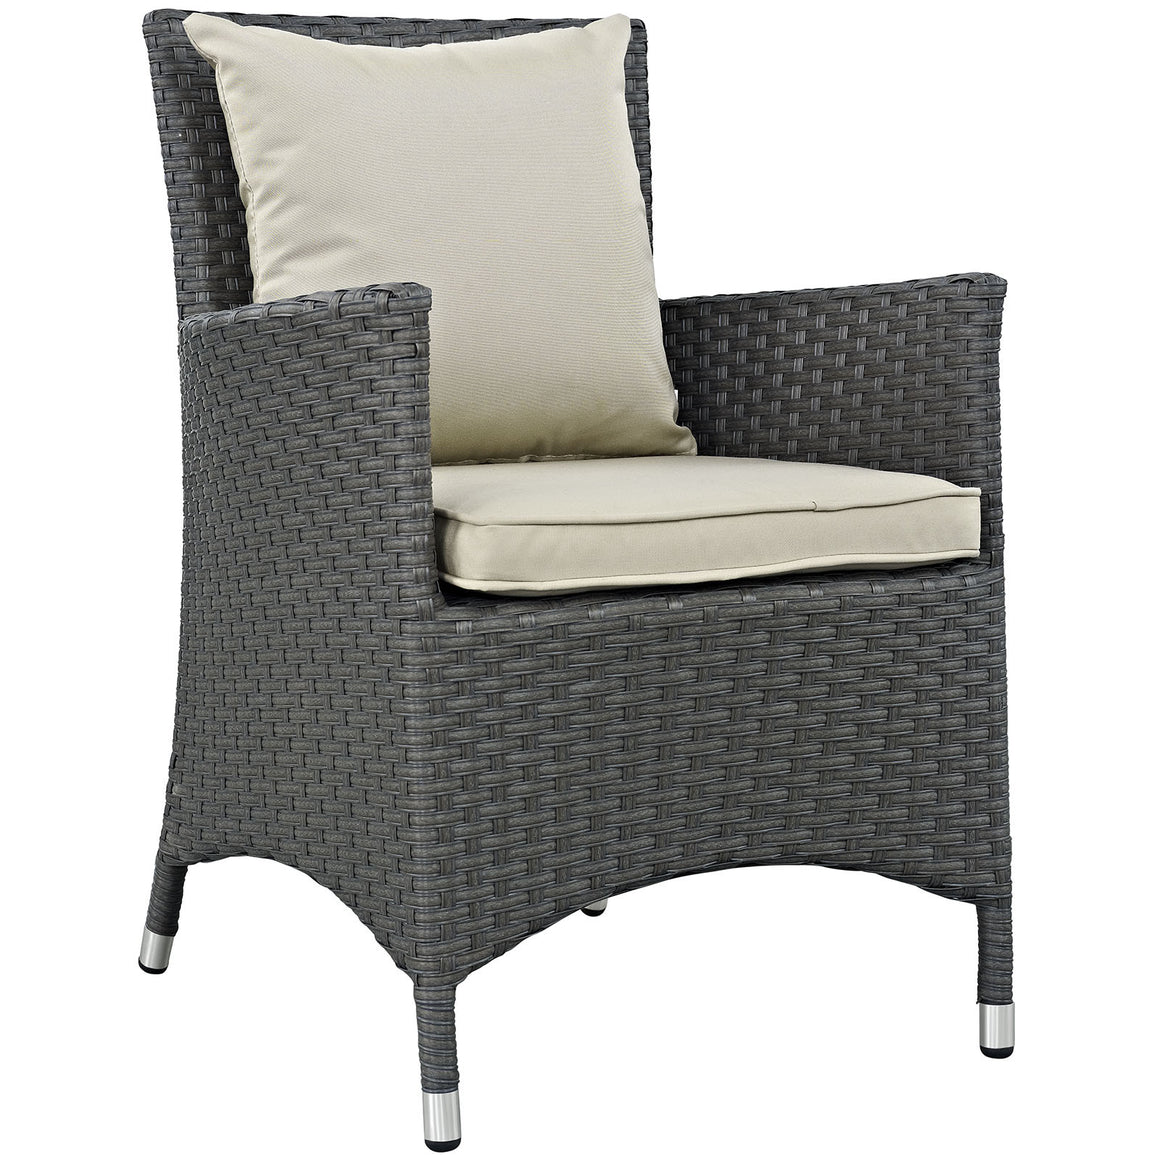 Sojourn Dining Outdoor Patio Armchair - taylor ray decor